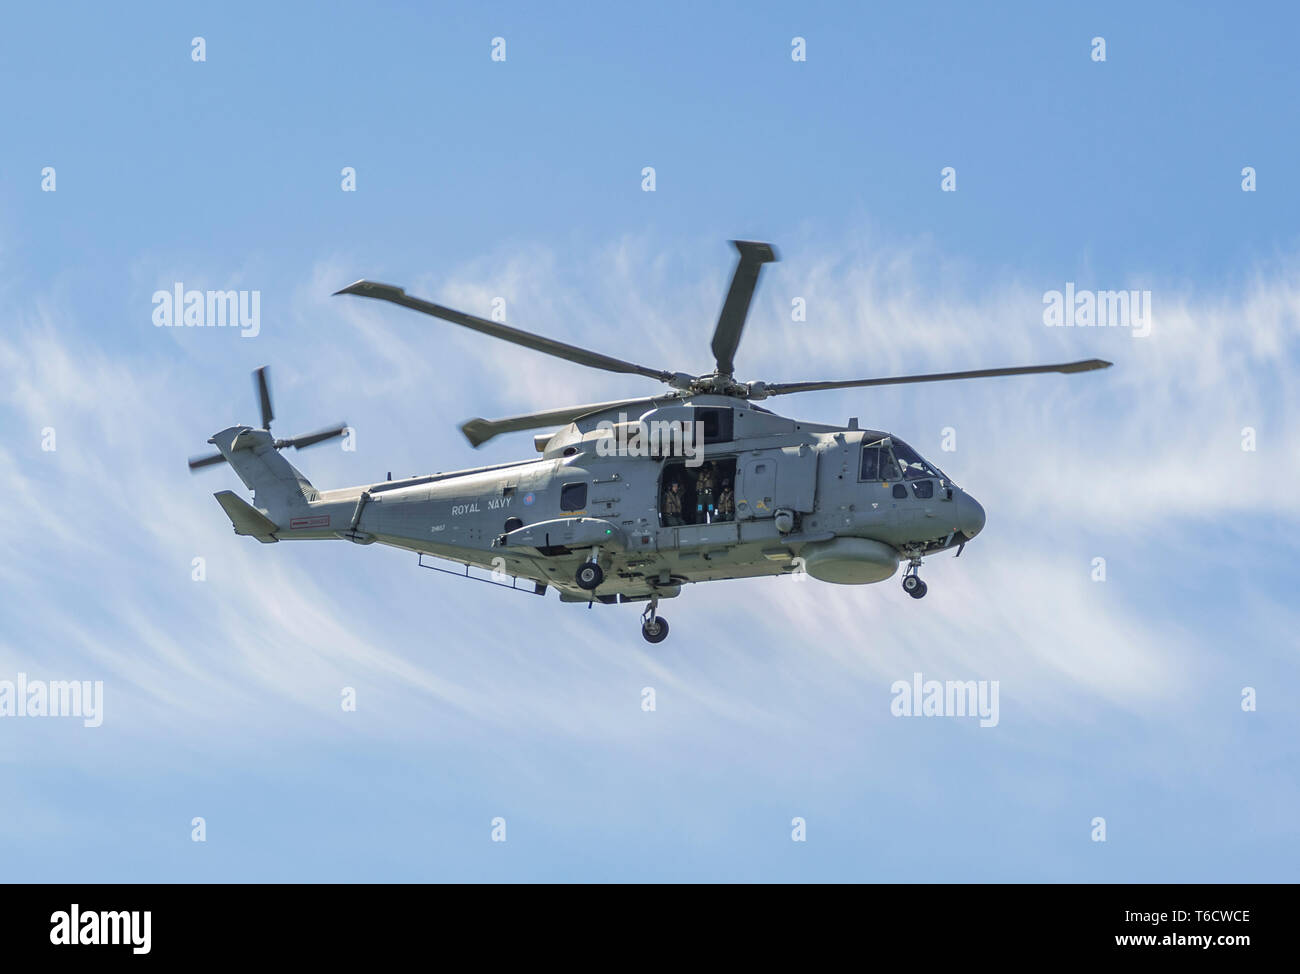 'Tristan' (ZH857), an AgustaWestland AW101 Merlin HM.2 (previously known as EH Industries EH101) Royal Navy helicopter flying low in the UK. - Stock Image